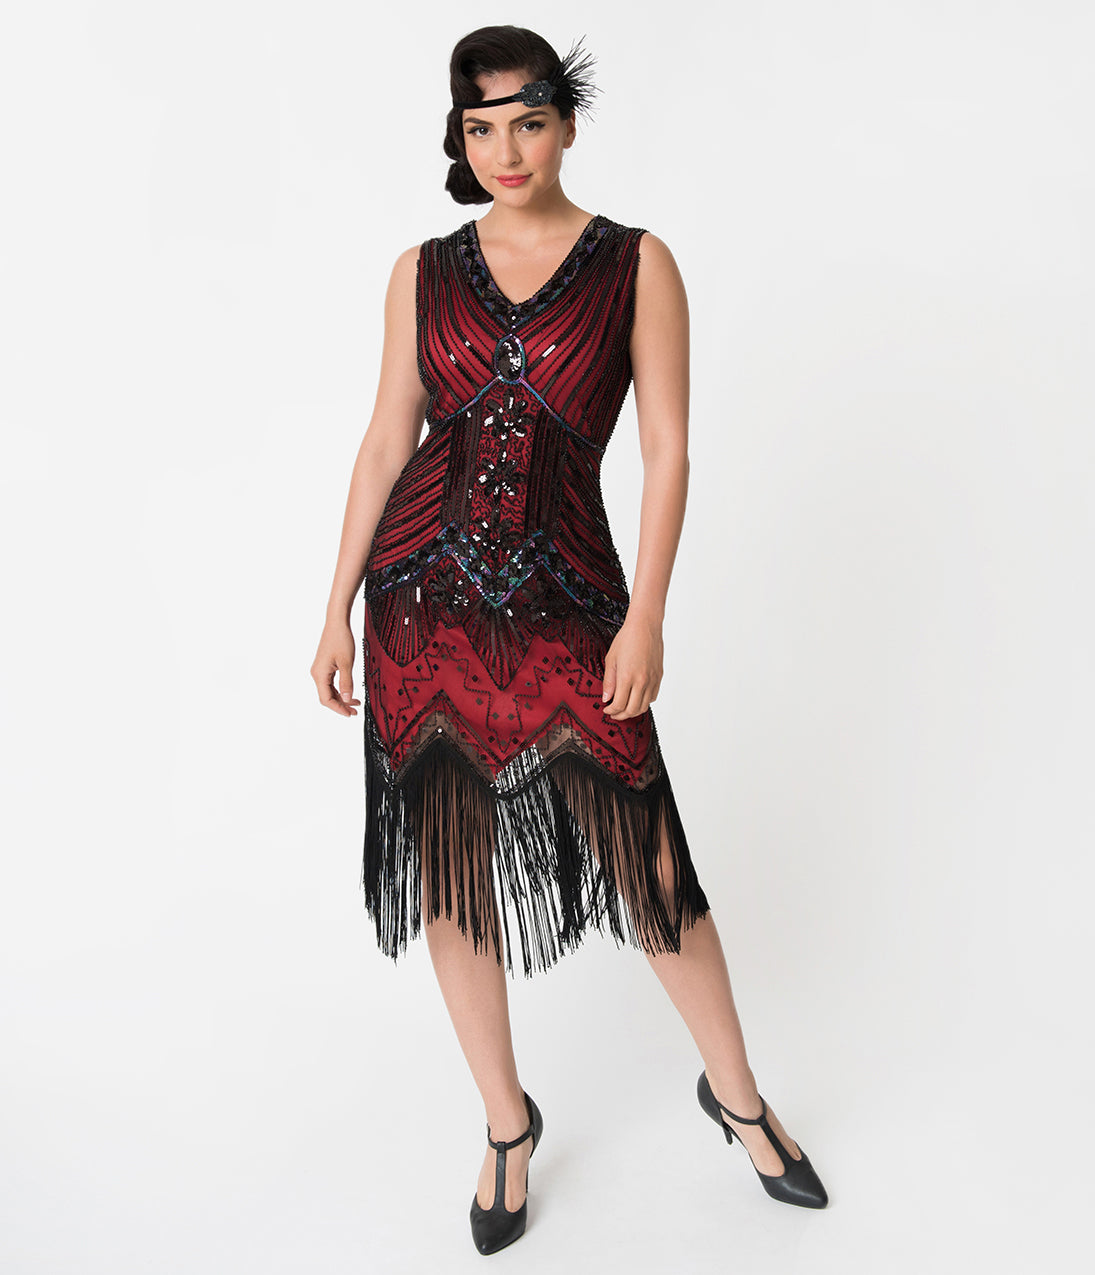 1920s Style Dresses, Flapper Dresses Unique Vintage 1920S Deco Red  Black Veronique Fringe Flapper Dress $98.00 AT vintagedancer.com